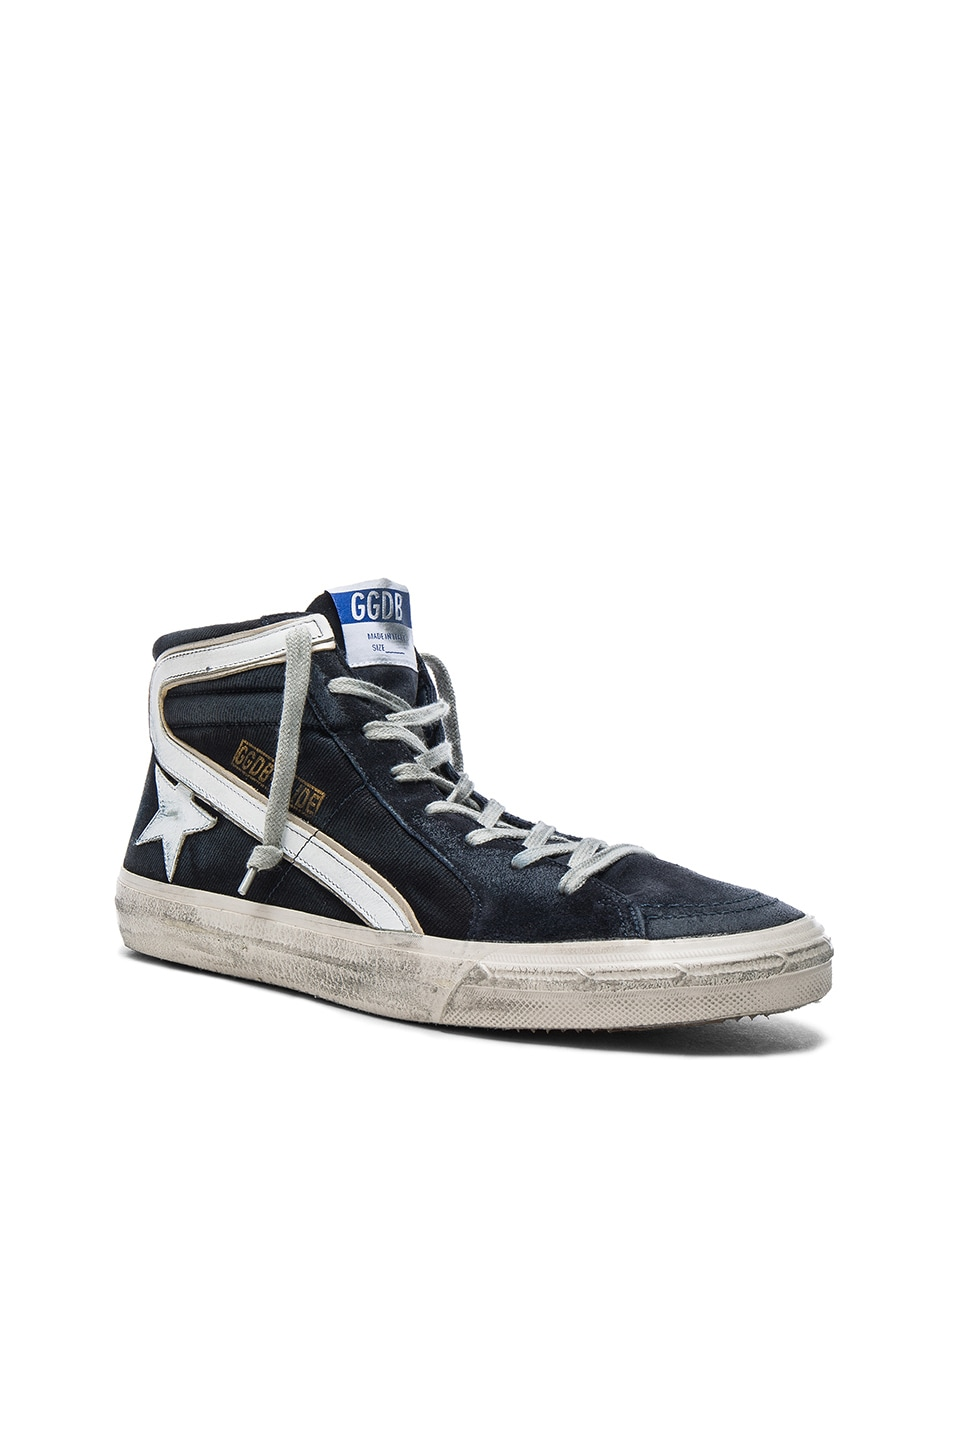 Image 1 of Golden Goose Suede Slide Sneakers in Navy Denim